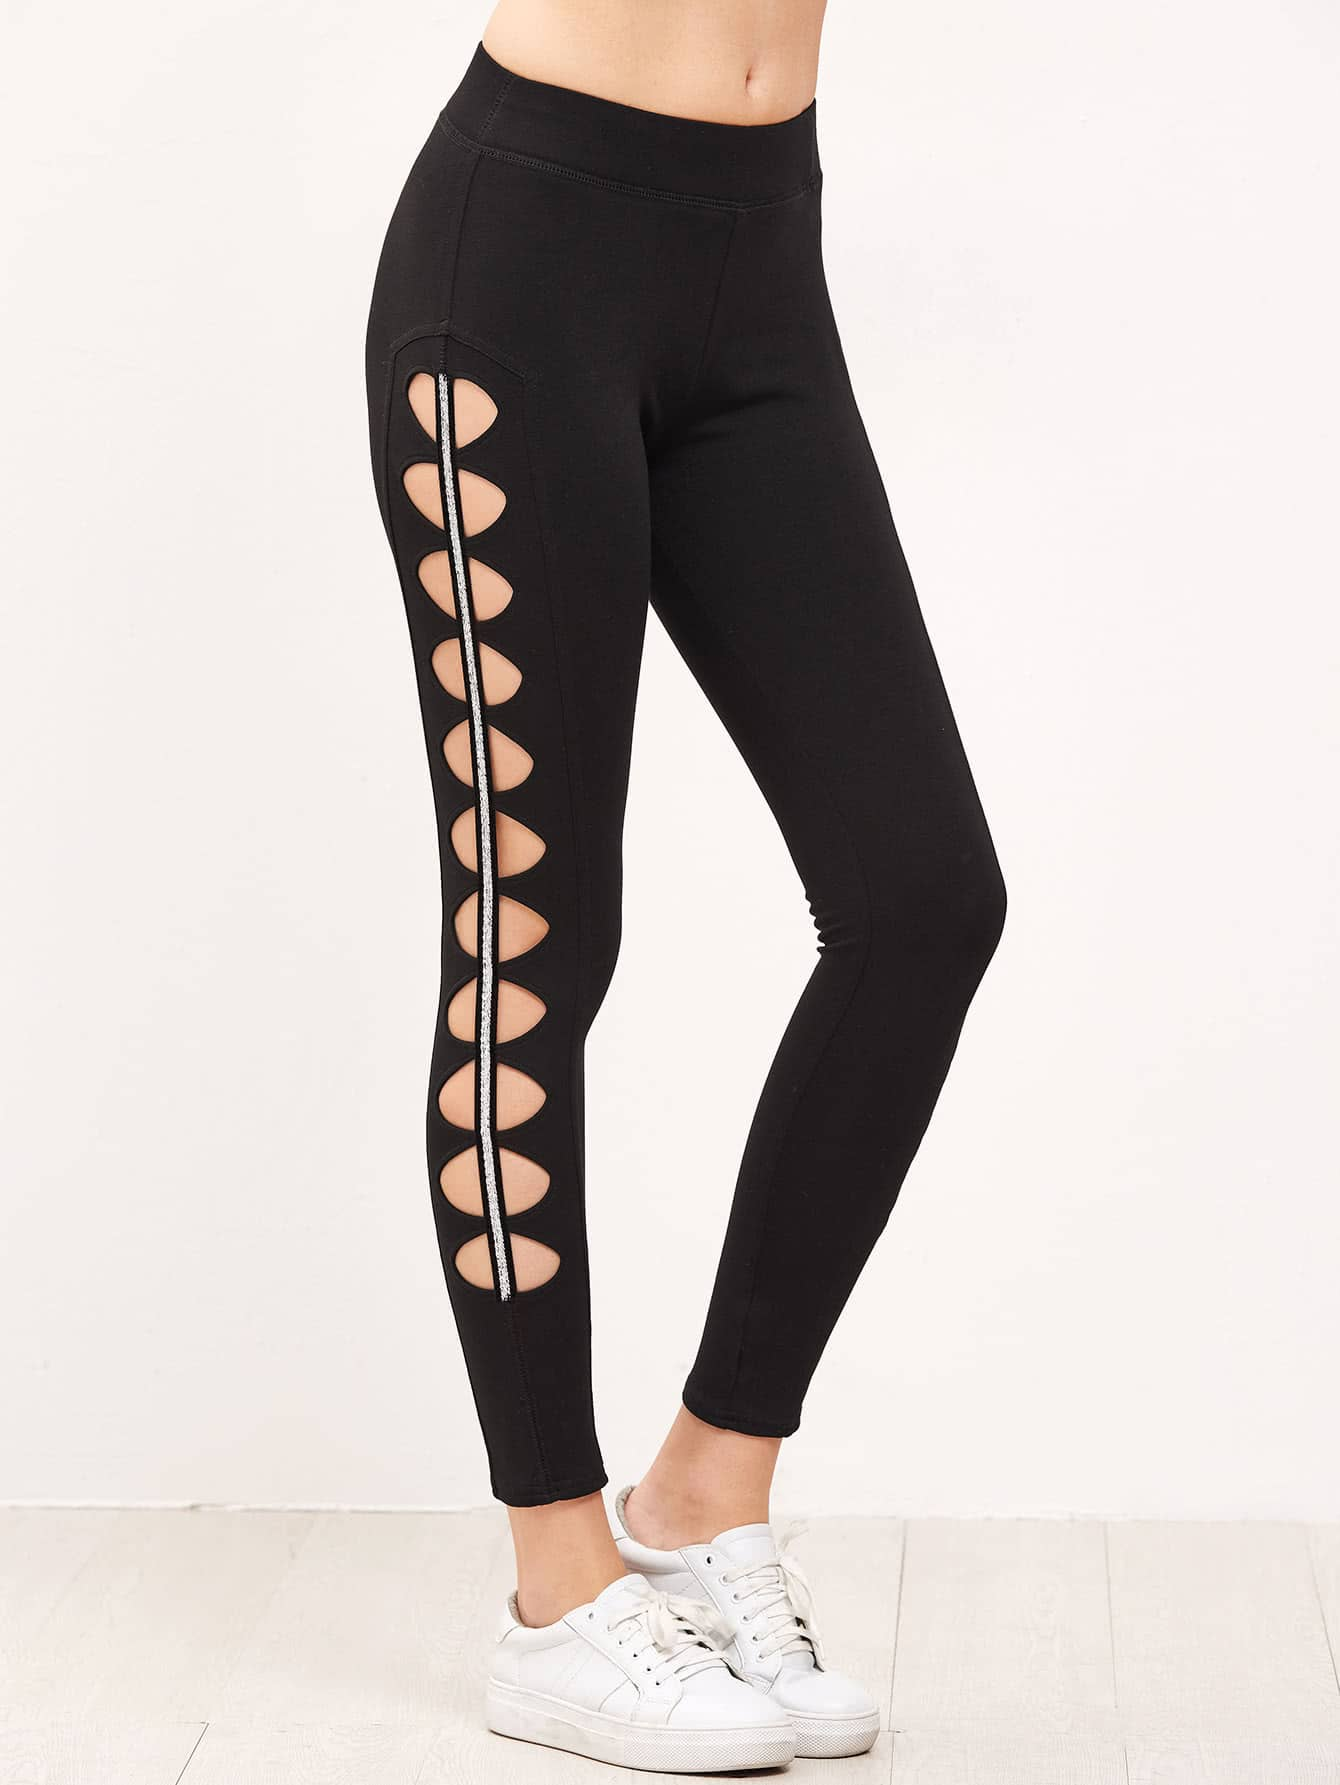 Cutout Striped Side Leggings leggings161201703